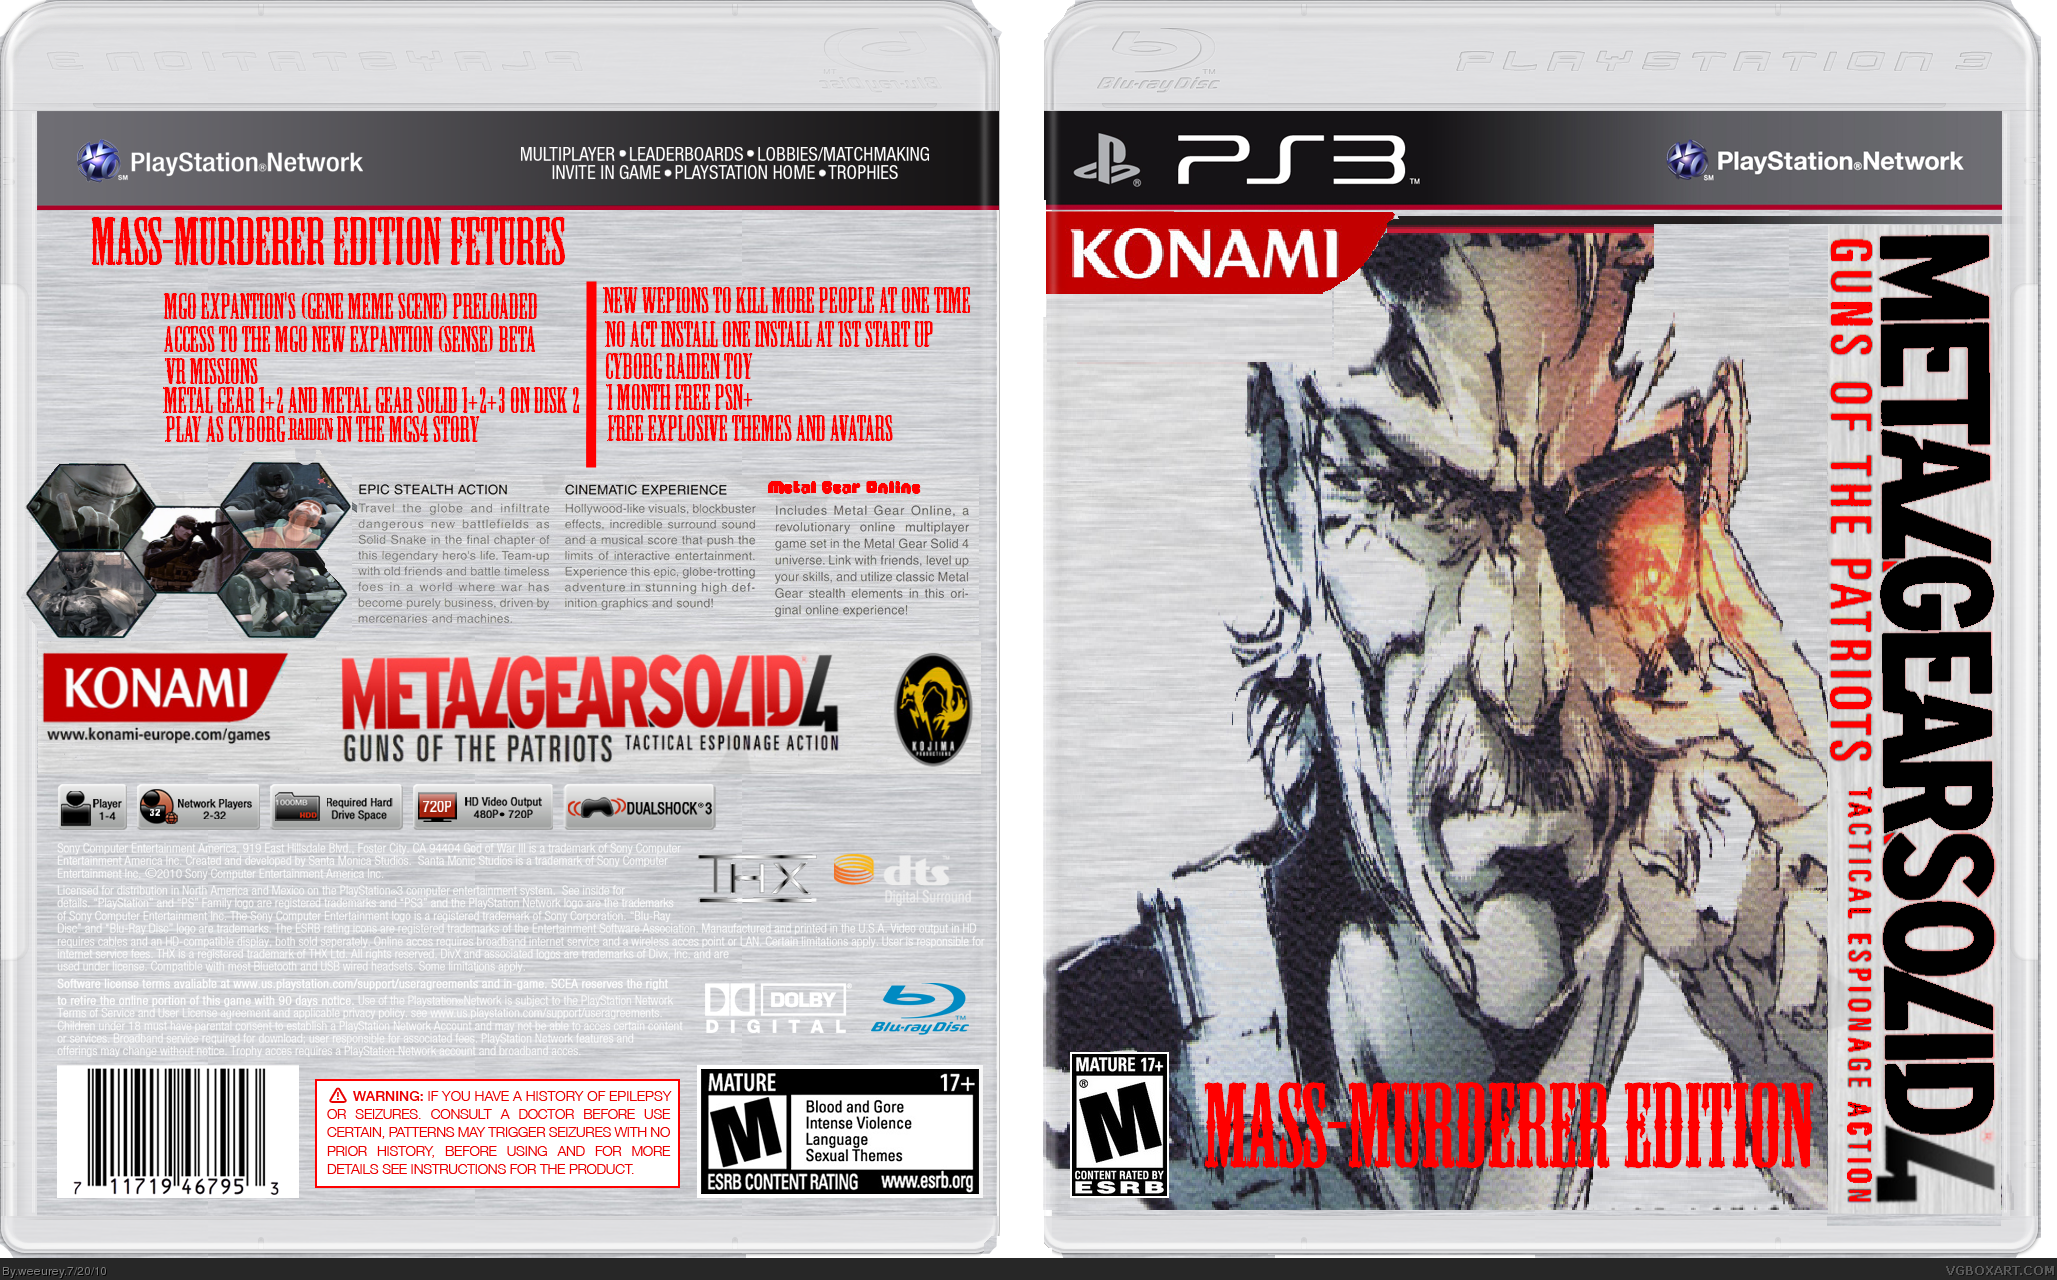 Metal Gear Solid 4: Murder Edition box cover